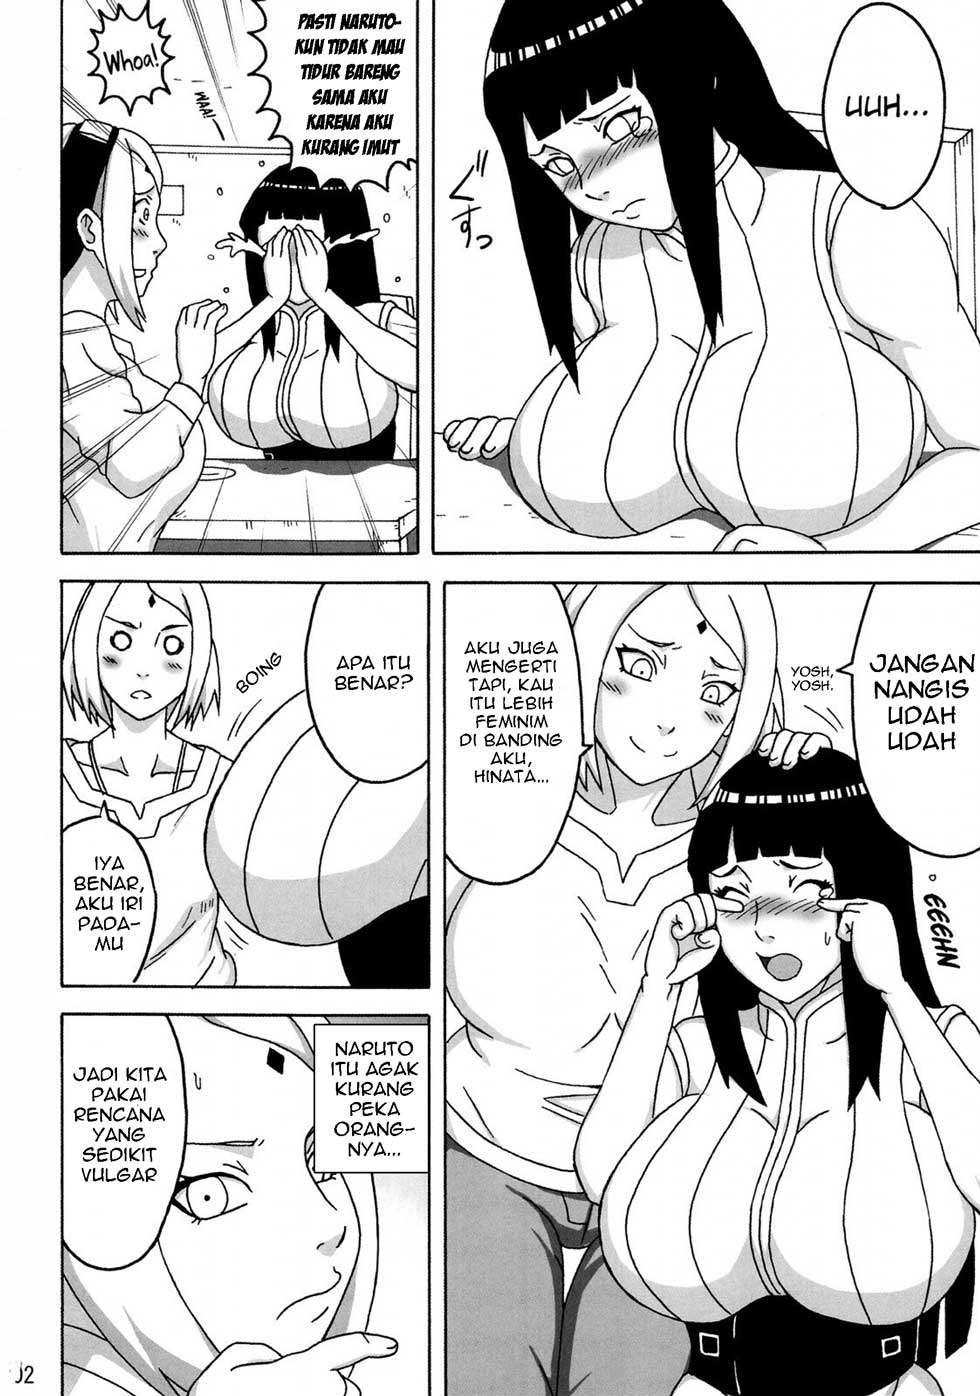 Komik hentai hinata really pleases